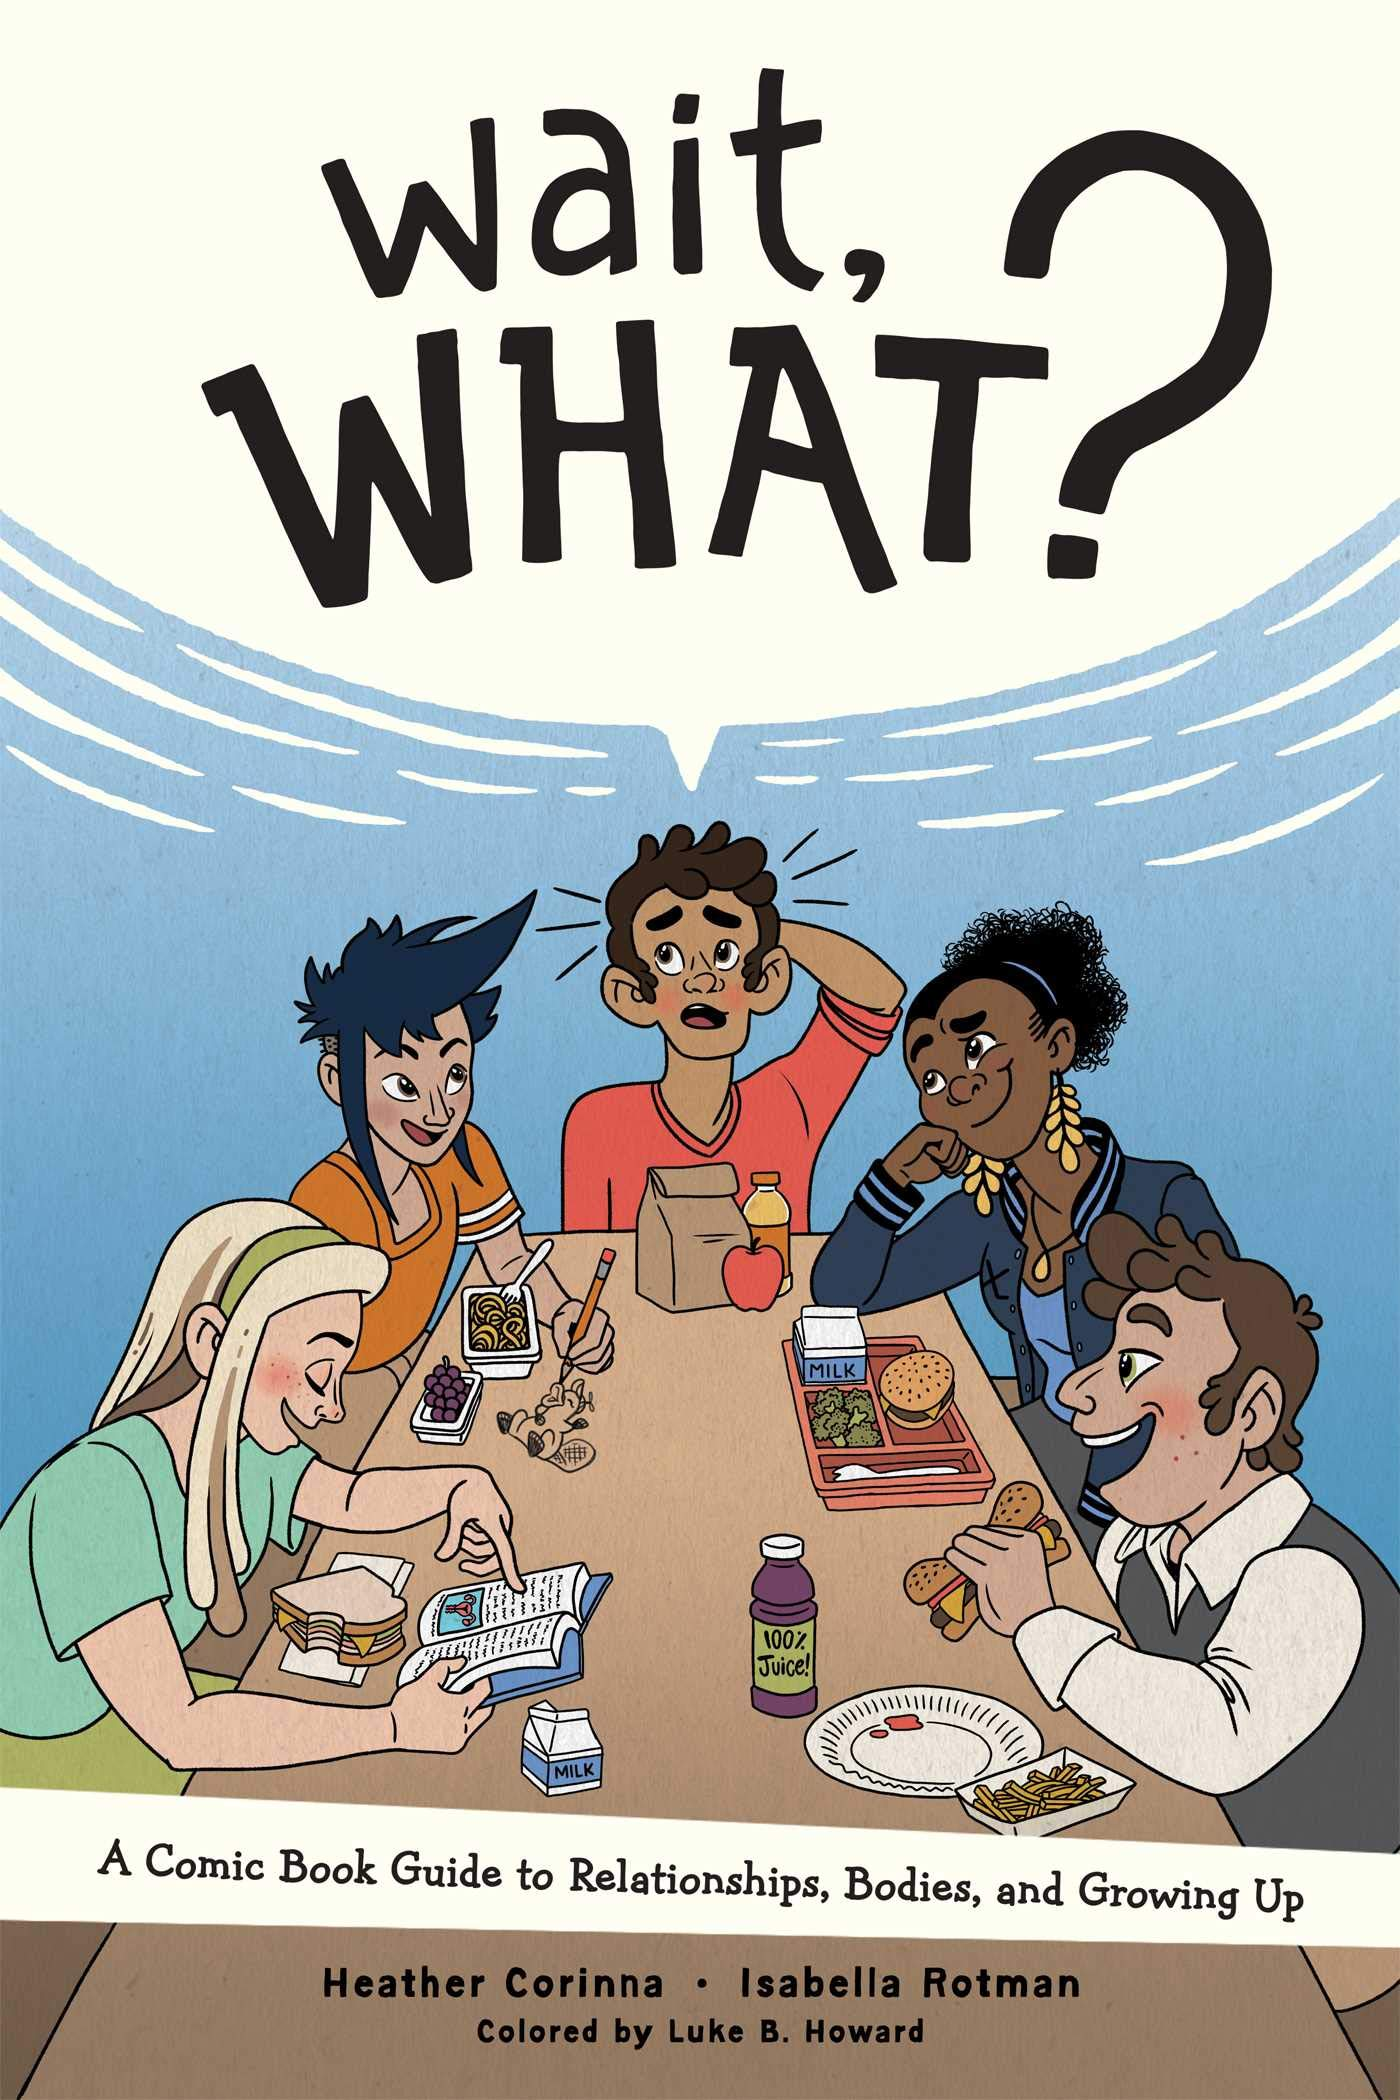 Wait, What?: A Comic Book Guide to Relationships, Bodies, and Growing Up